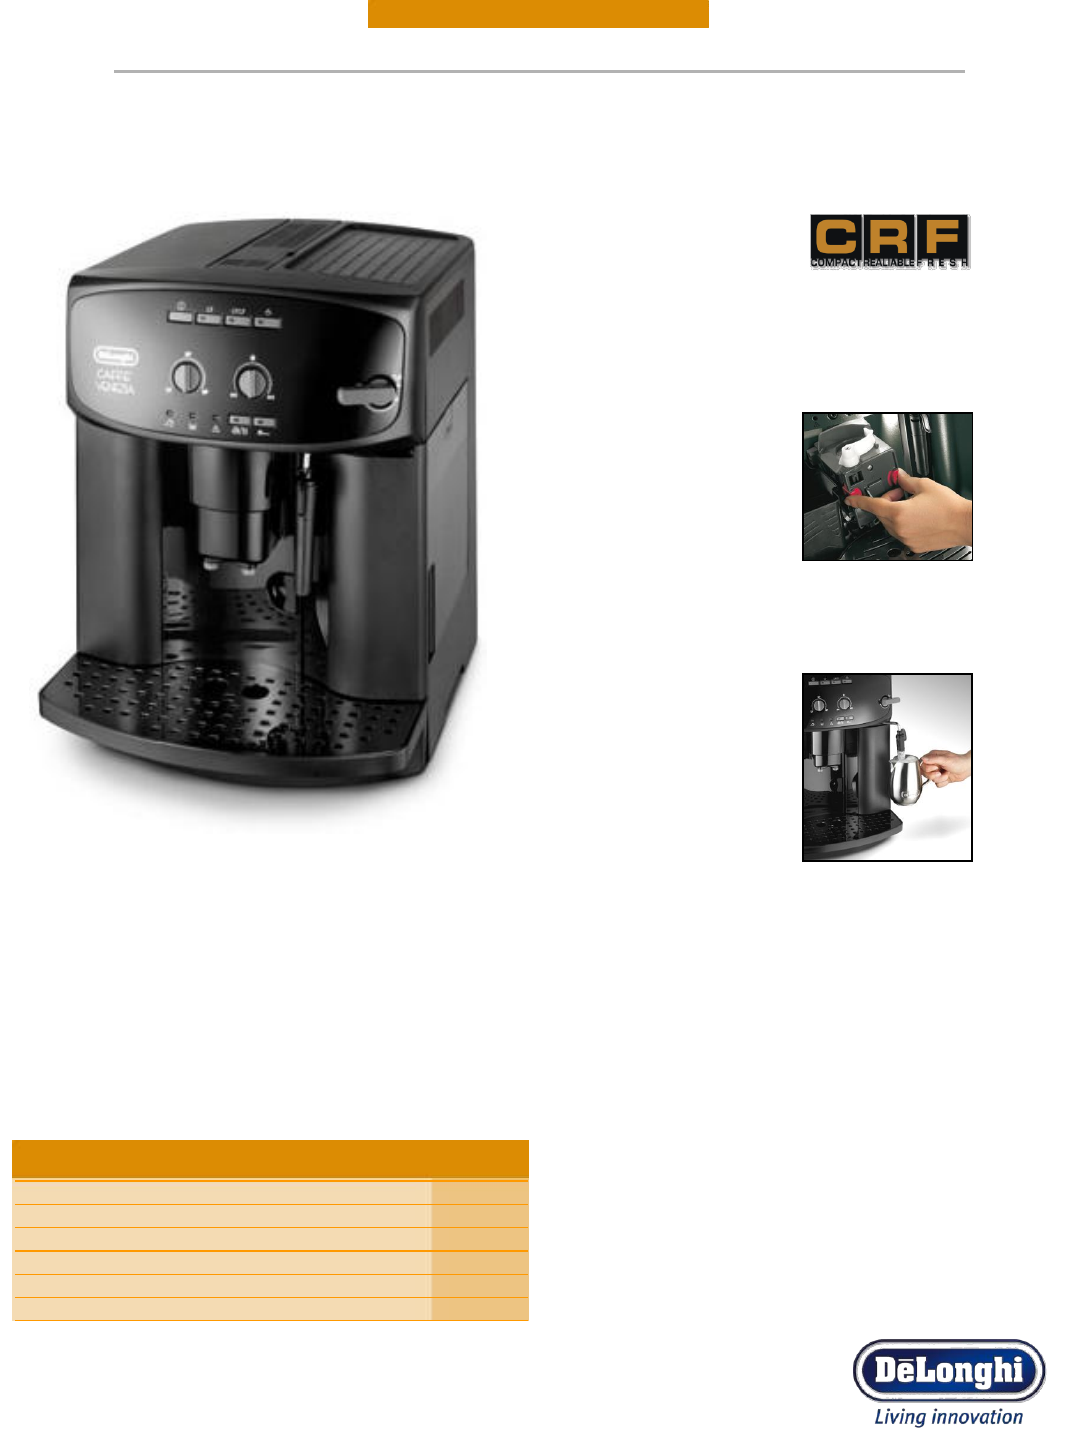 Delonghi Coffee Maker Ec330s User Guide : DeLonghi Coffeemaker ESAM 2000 User Guide ManualsOnline.com